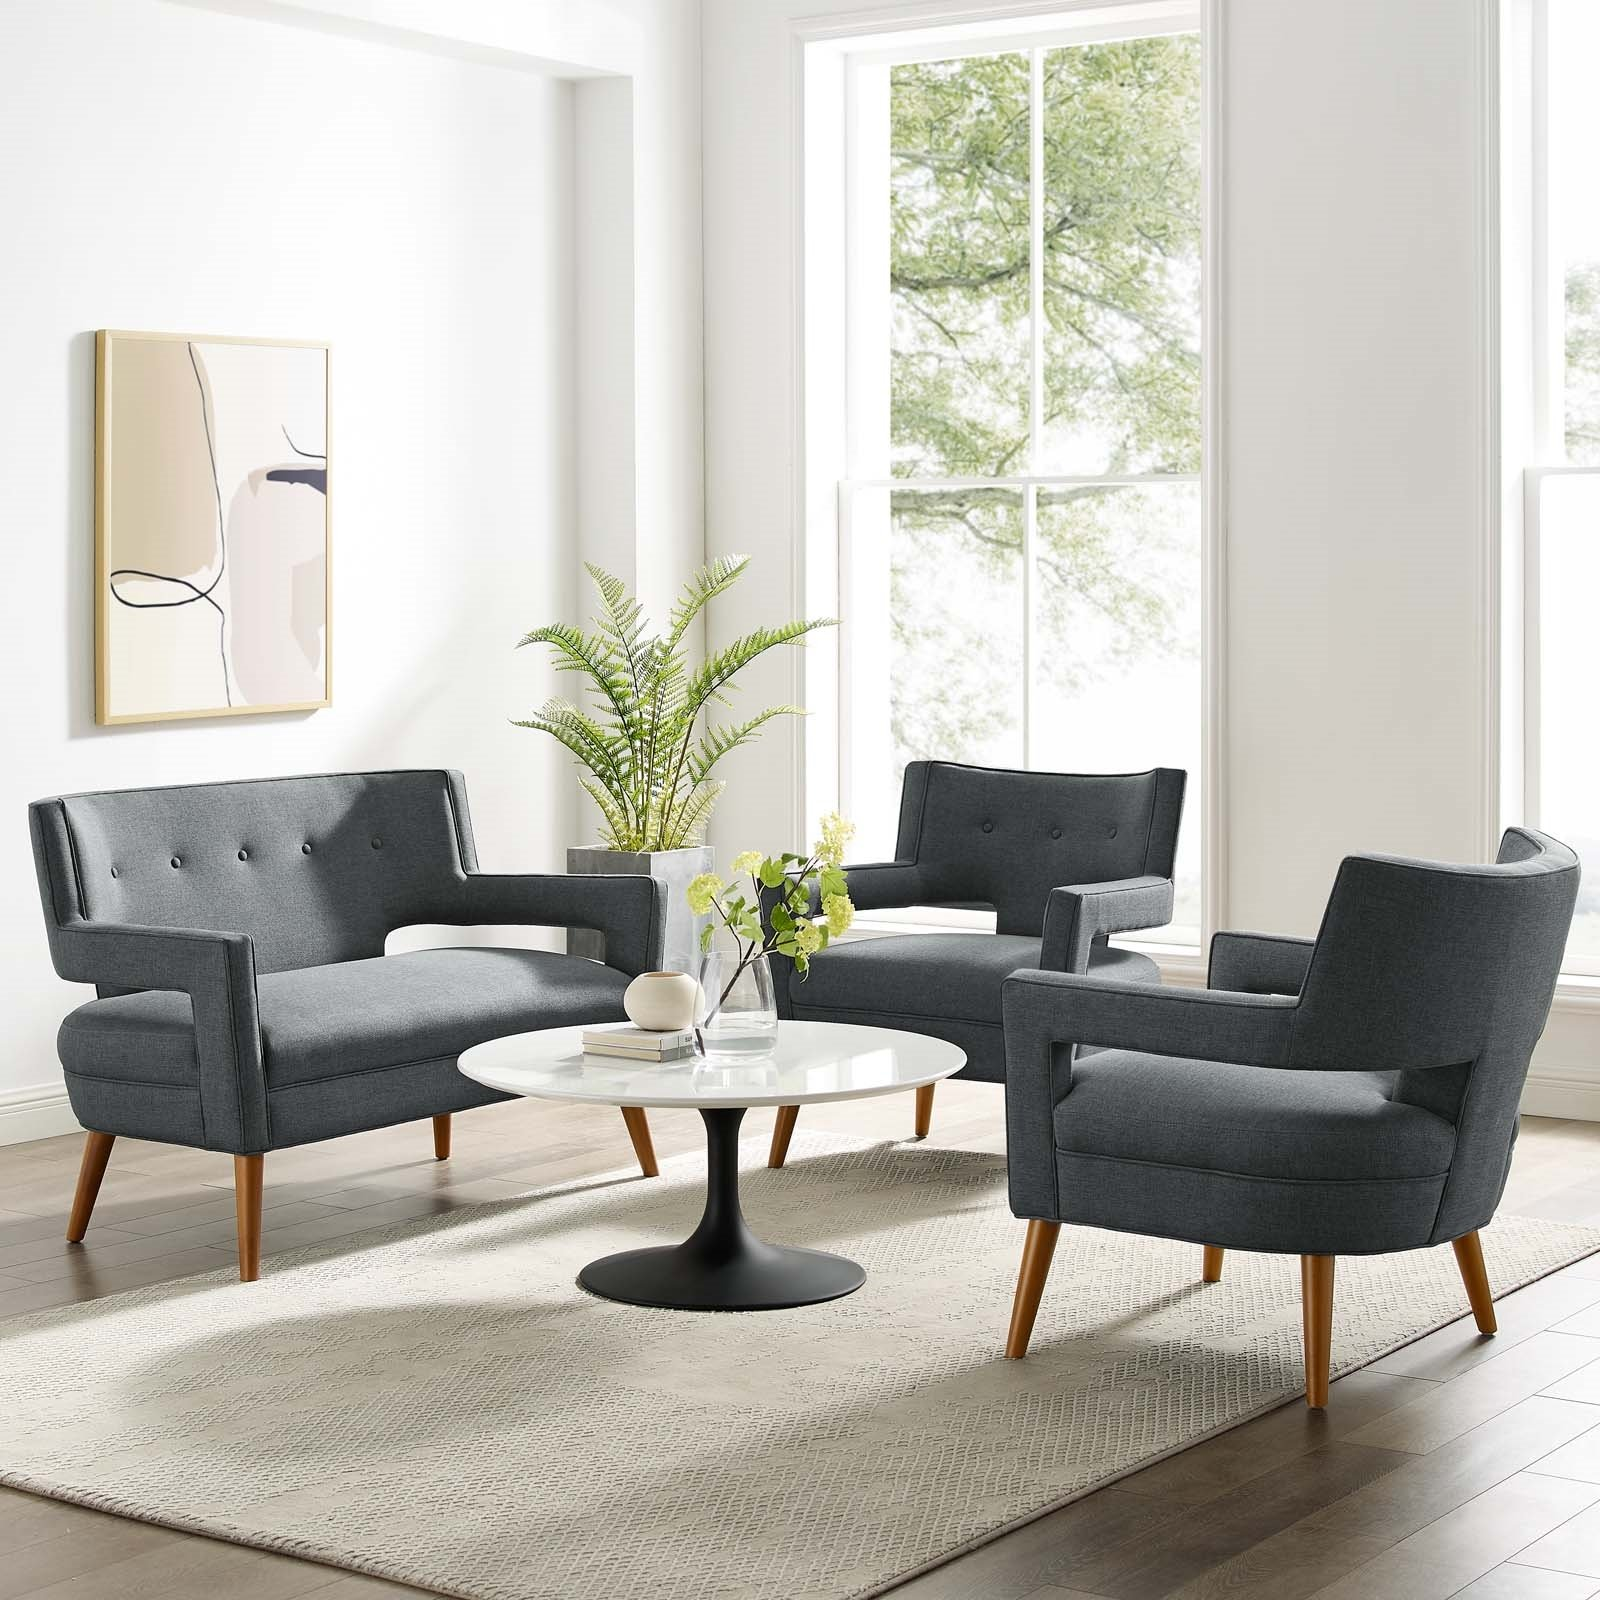 Sheer 3 Piece Upholstered Fabric Set in Gray